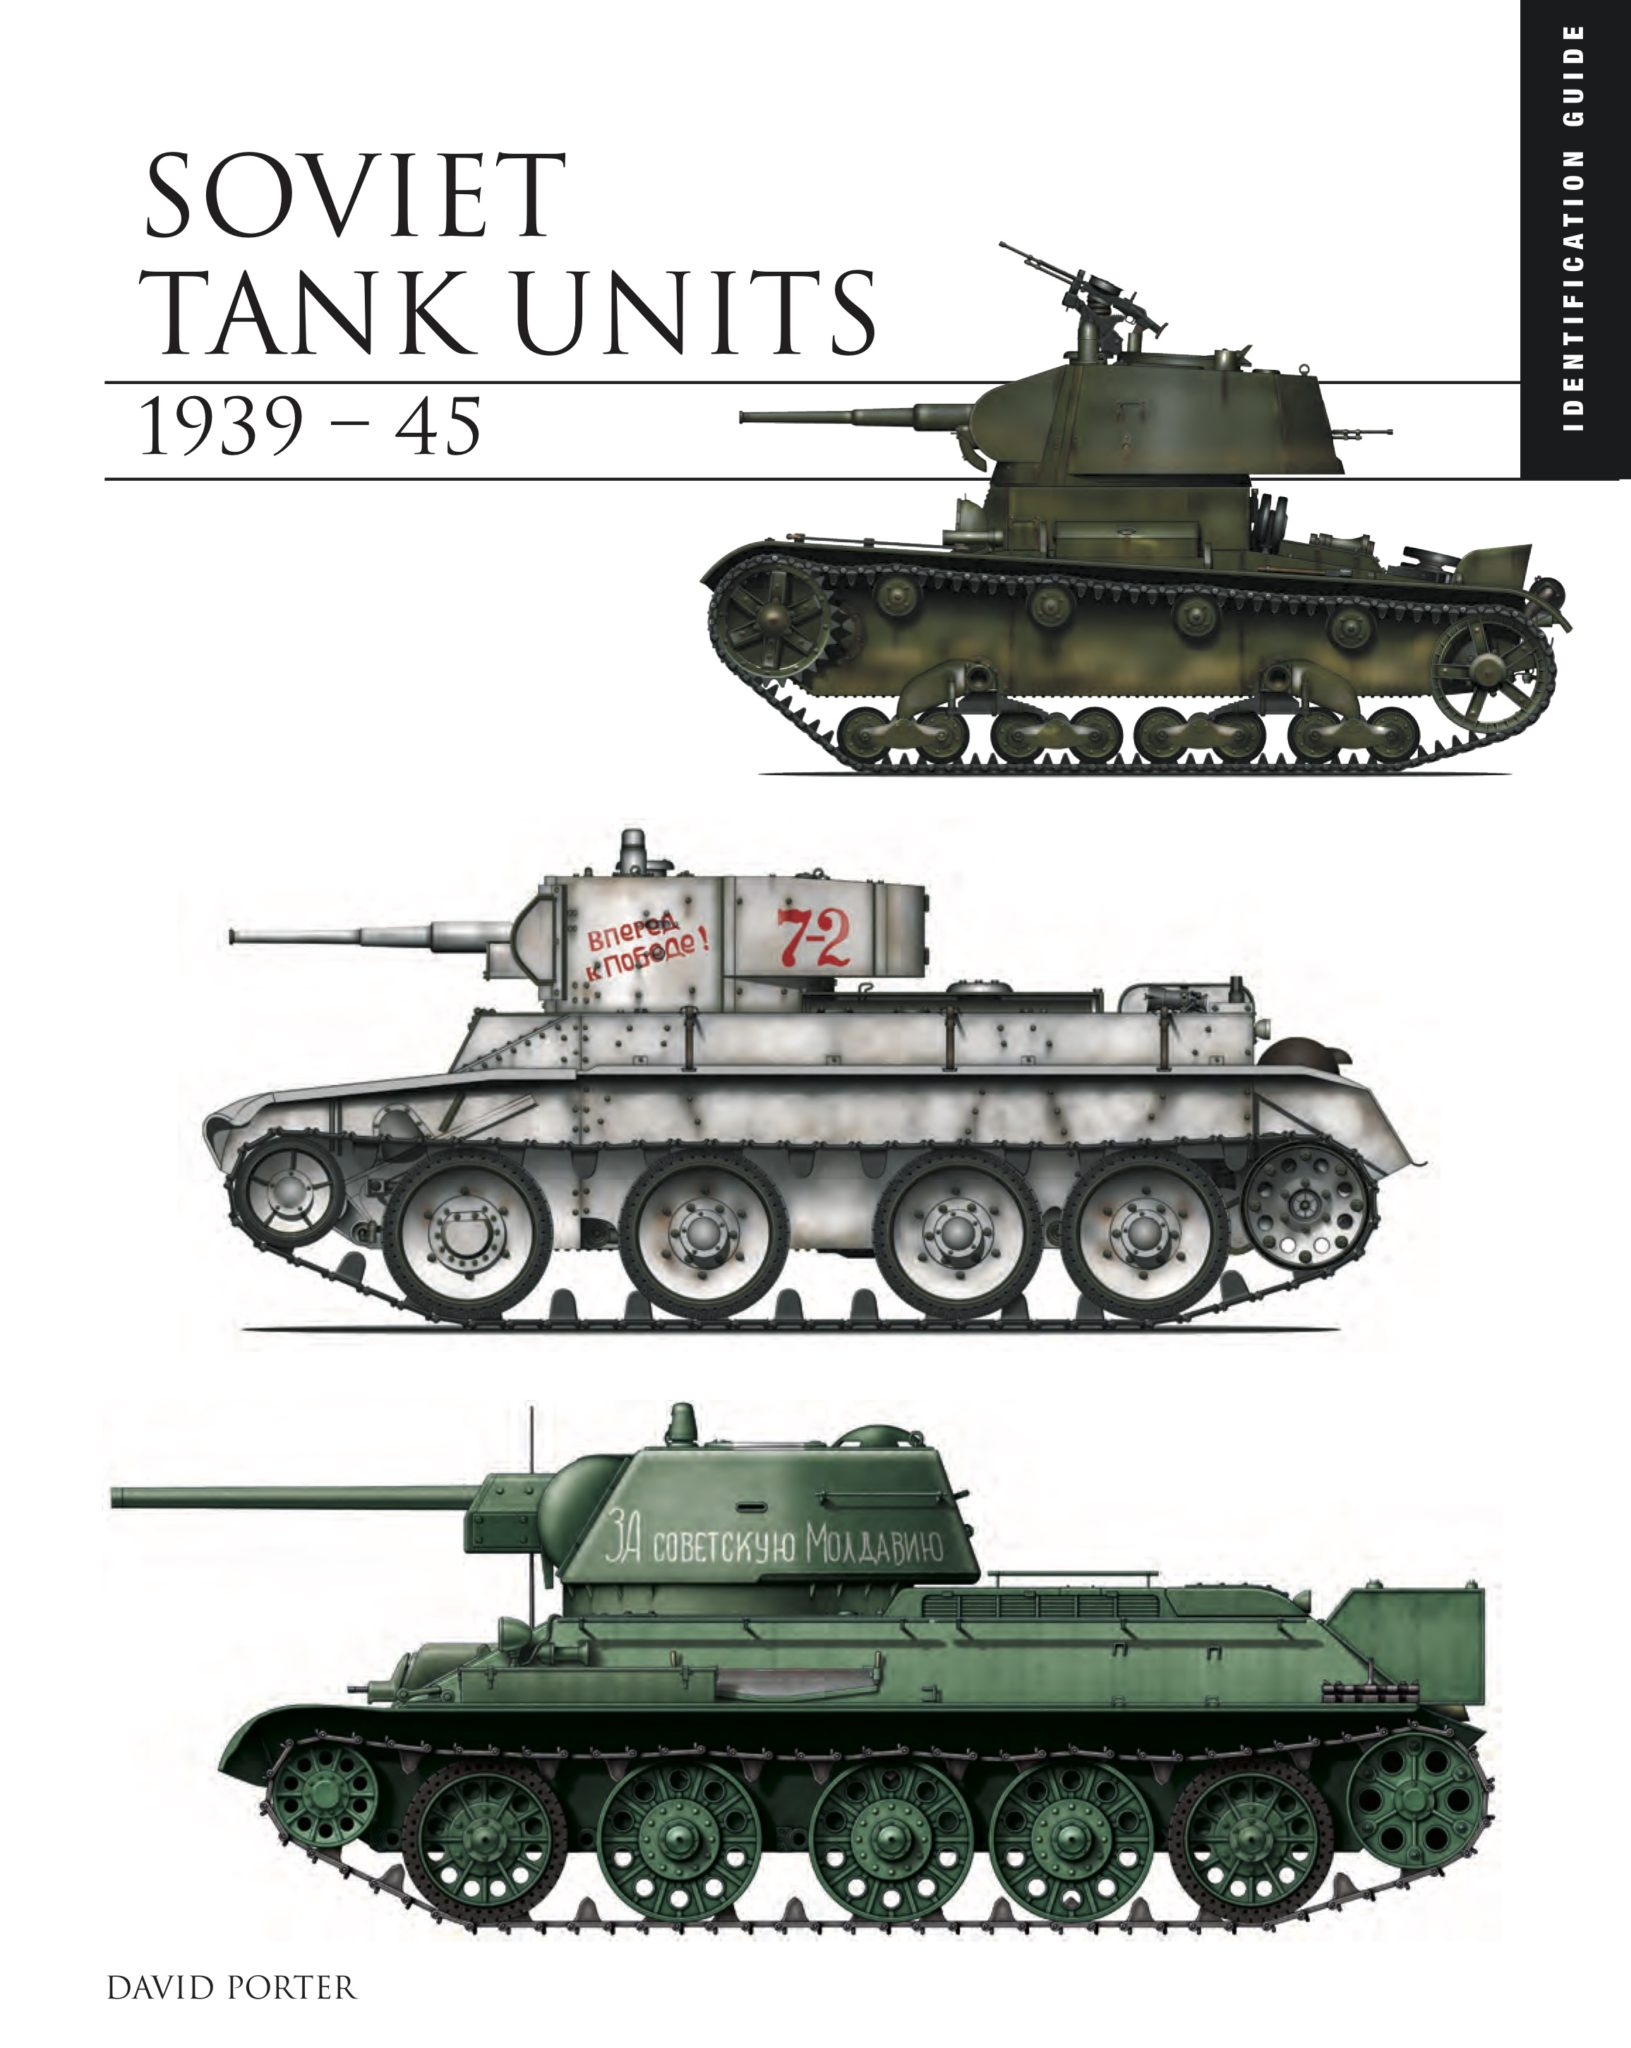 Soviet Tank Units 1939-45: The Essential Vehicle Identification Guide